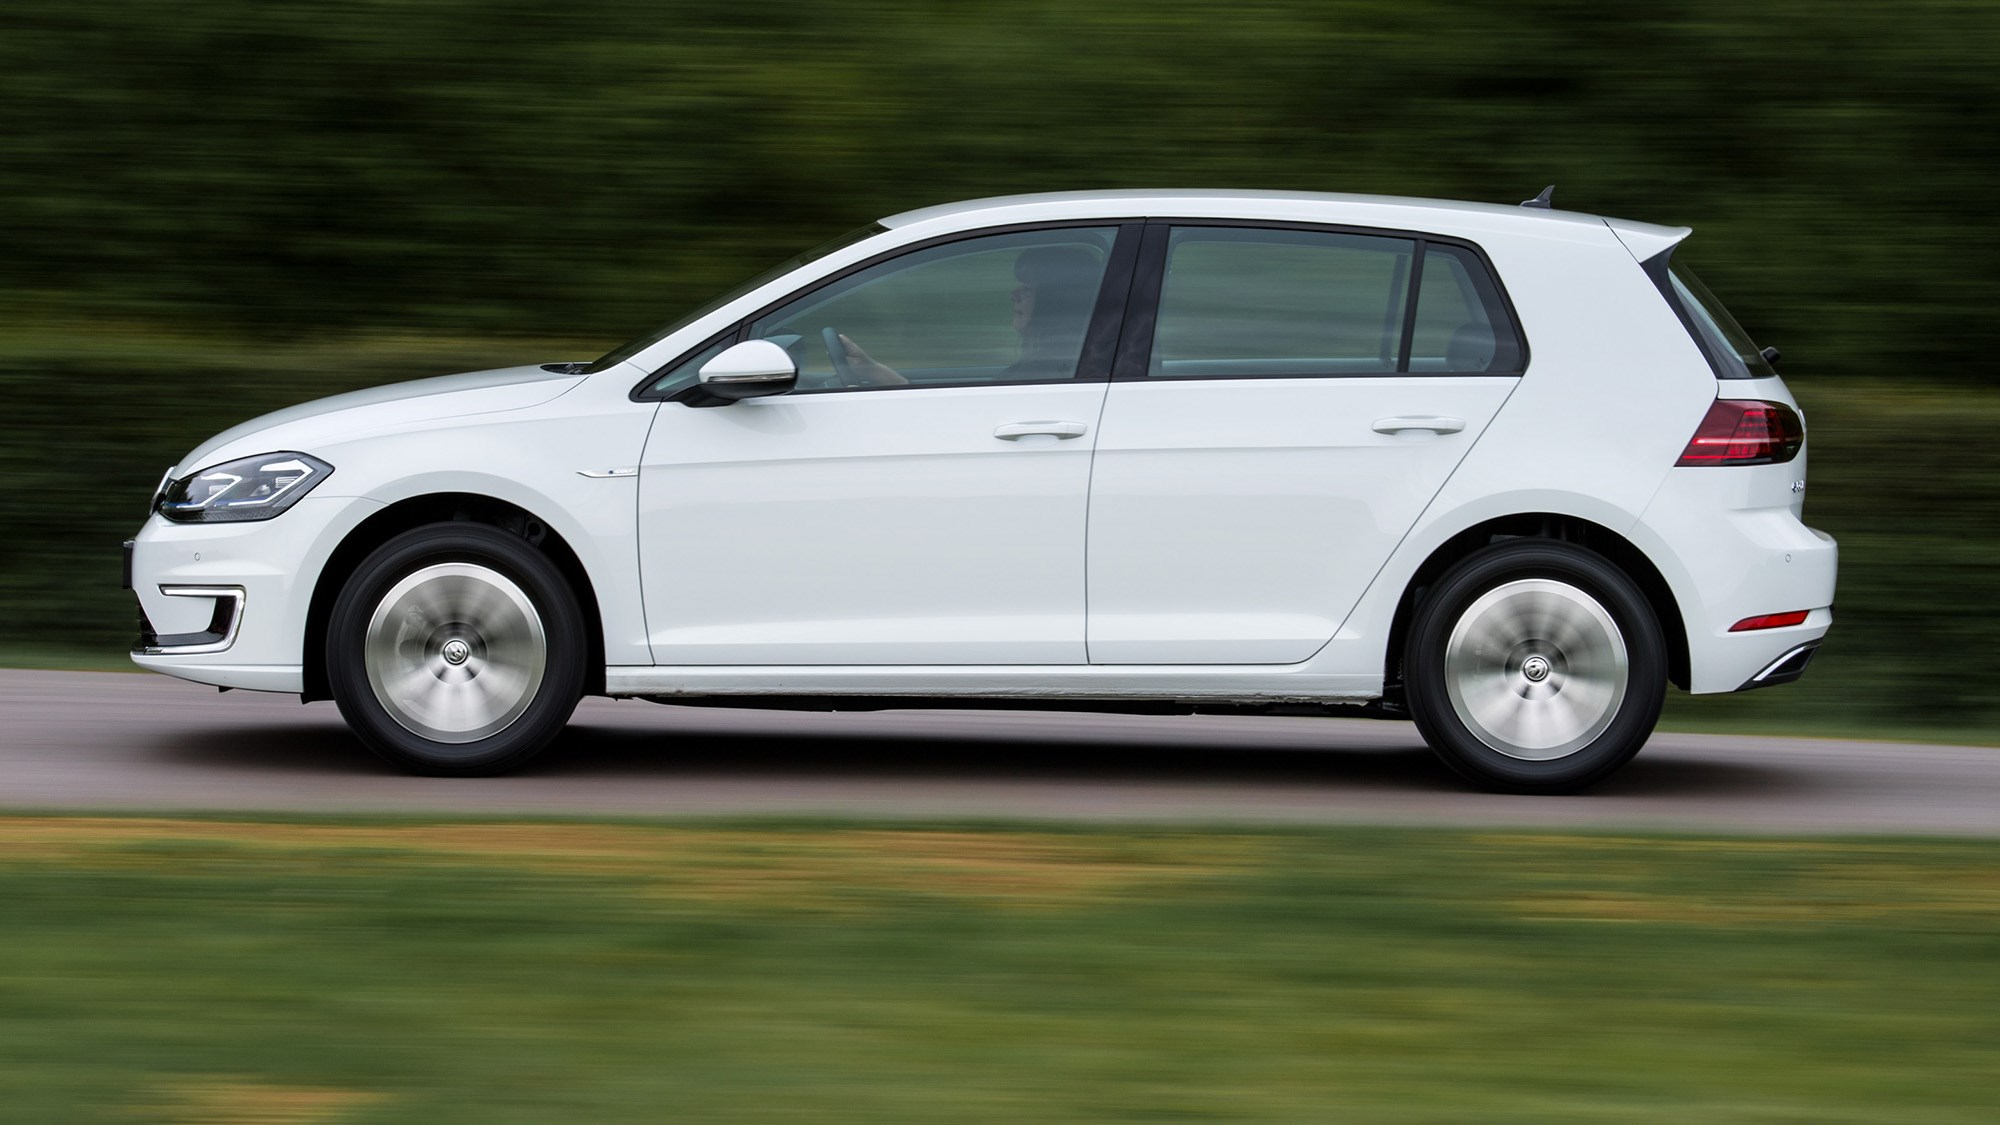 Volkswagen e-Golf driving